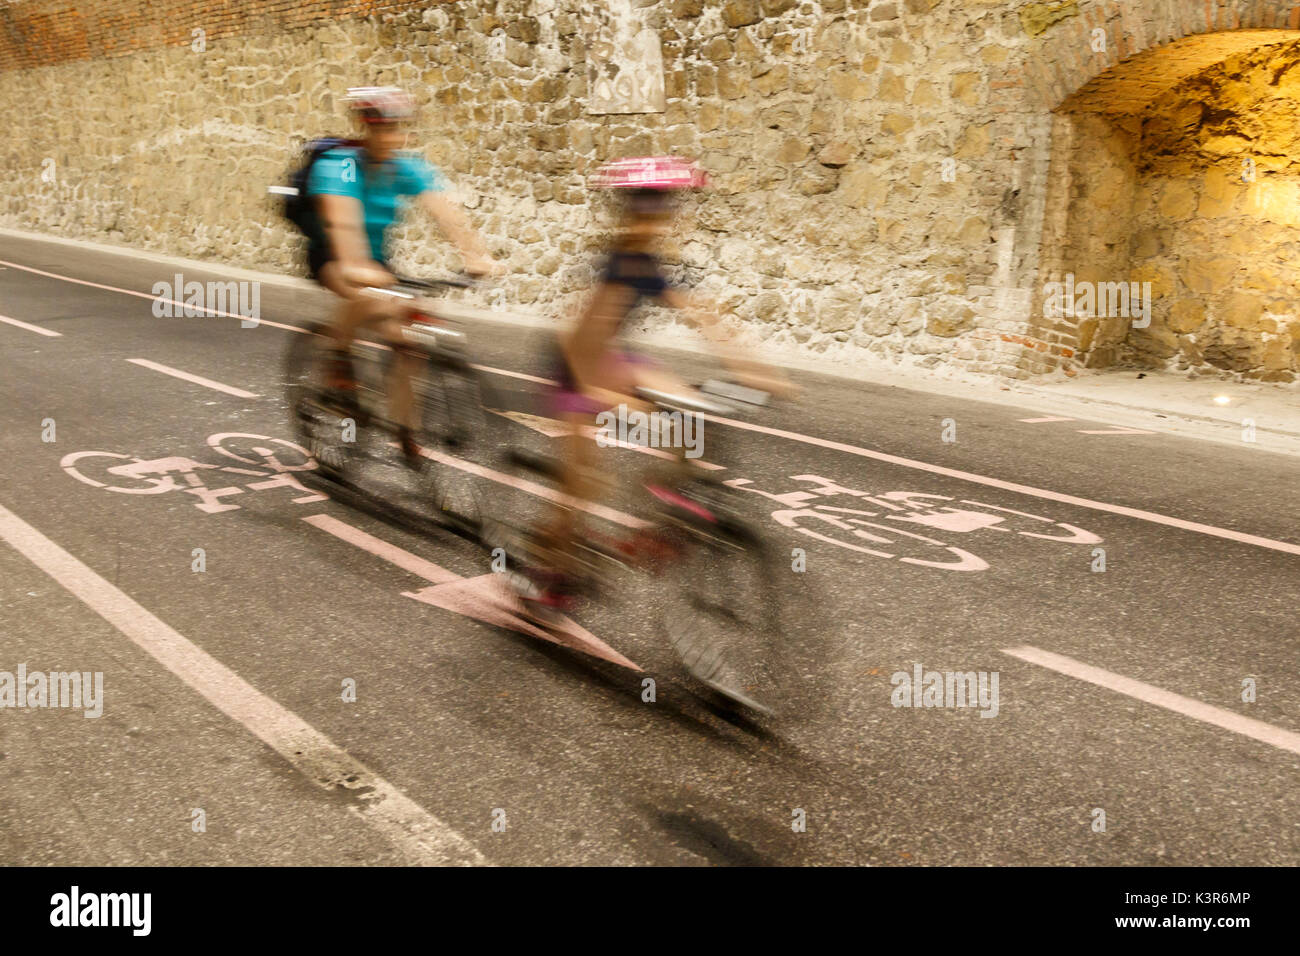 Liguria, Italy. Cycling Riviera cycleway - Stock Image